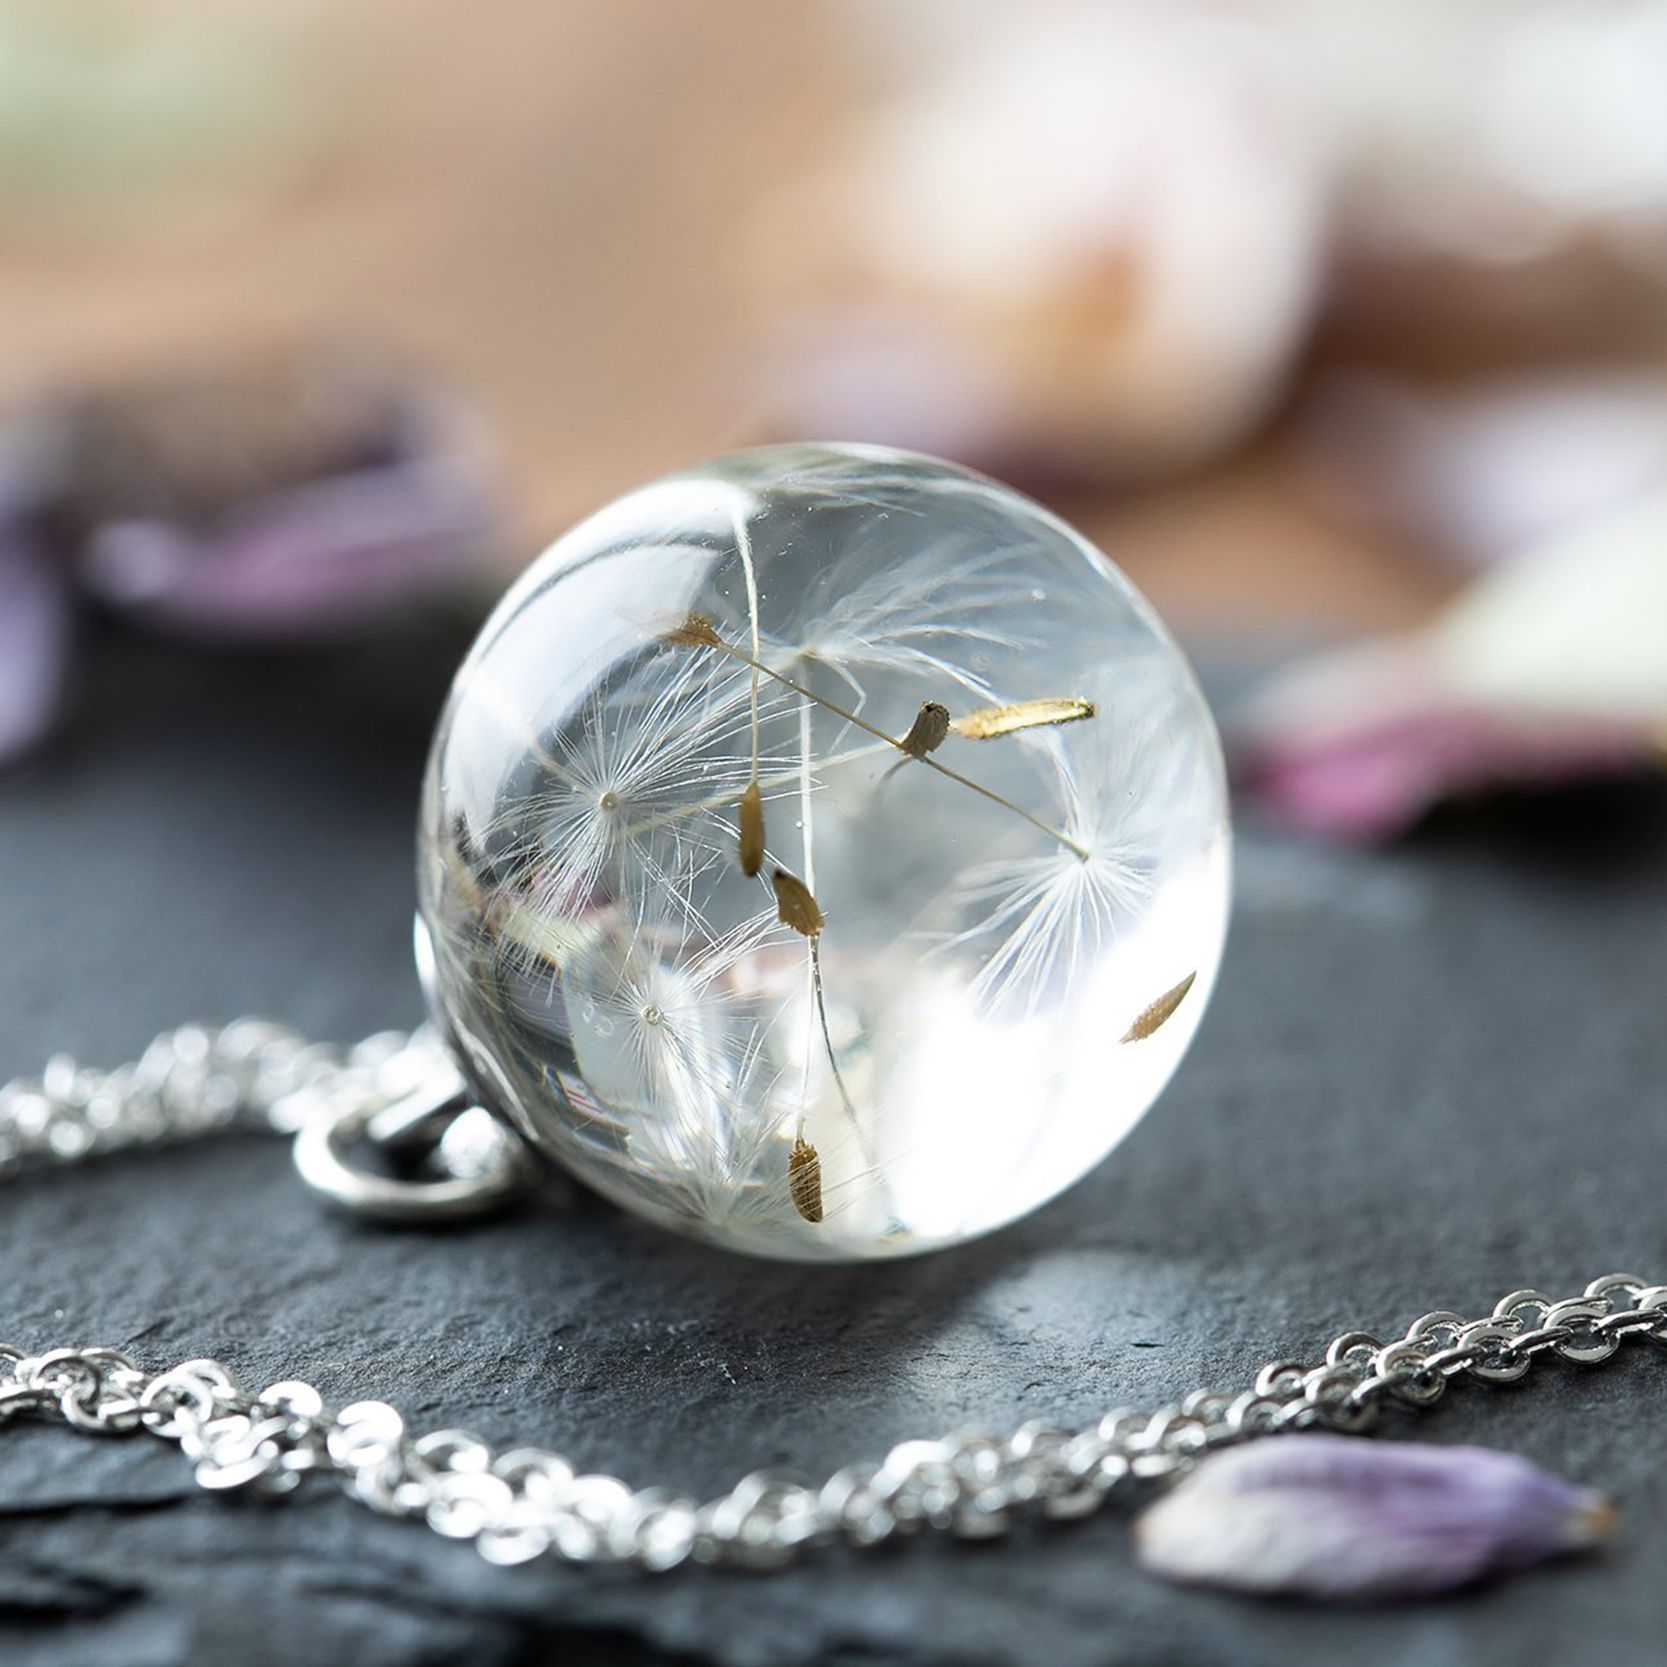 Dandelion necklace Dandelion wish necklace Clear crystal necklace Botanical necklace Real dandelion seeds with glitters Eco resin necklace